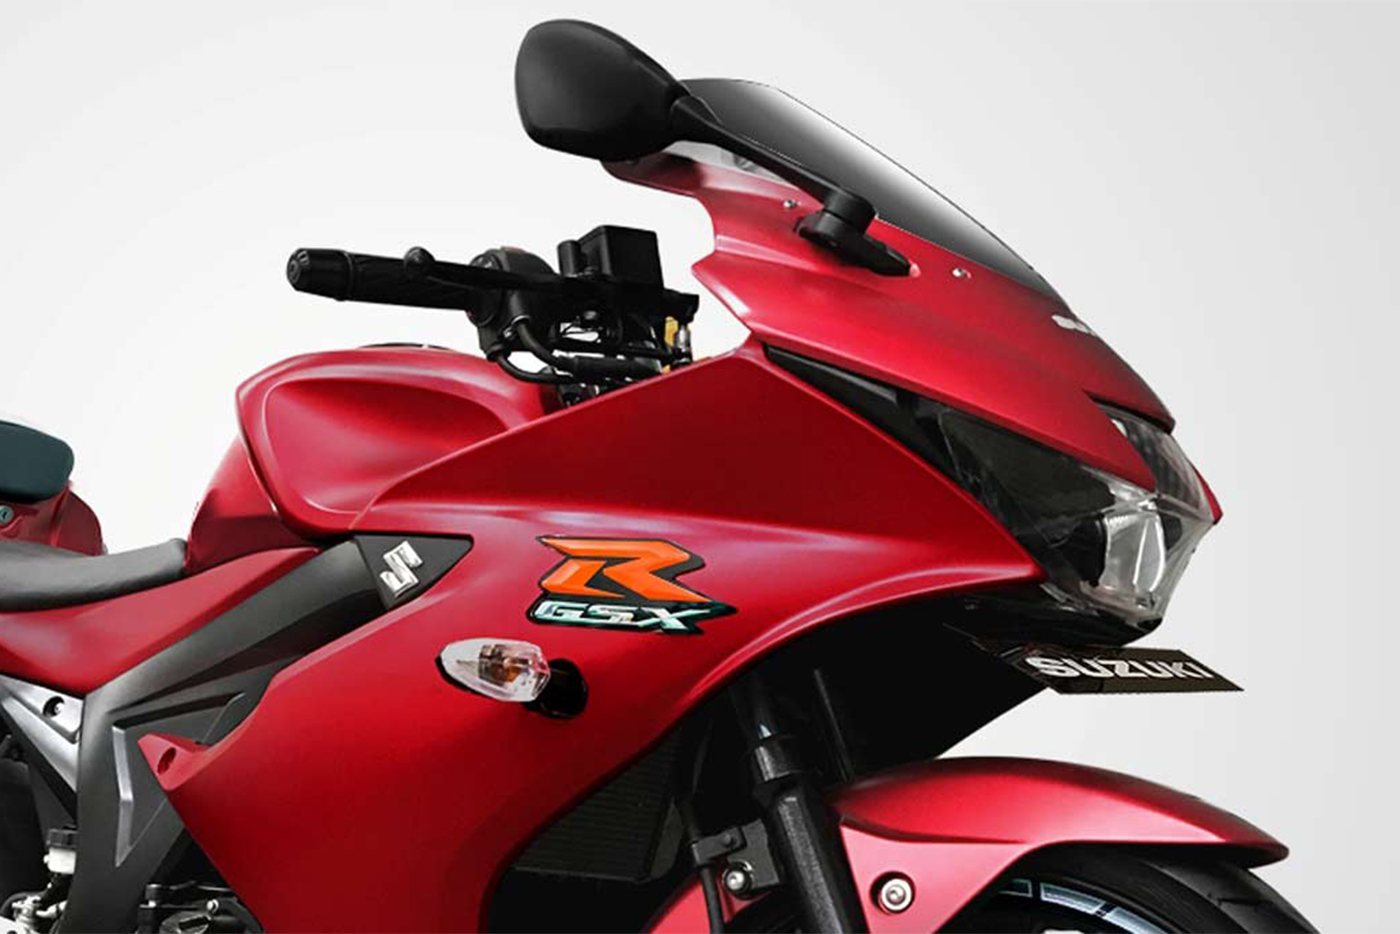 suzuki-gsx-r150-matte-summer-red-5.jpg